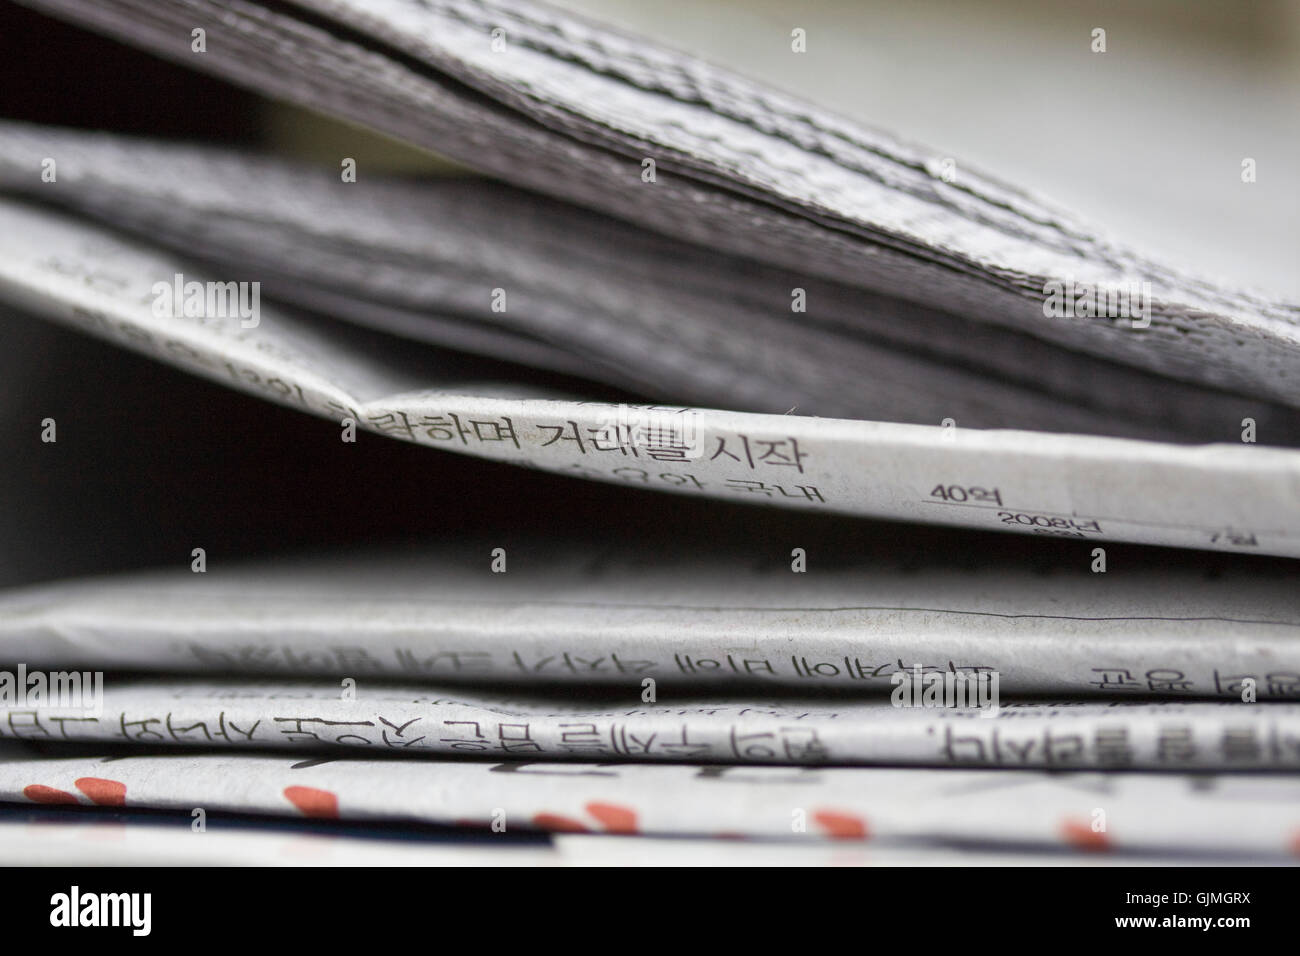 magazine newspaper journal - Stock Image